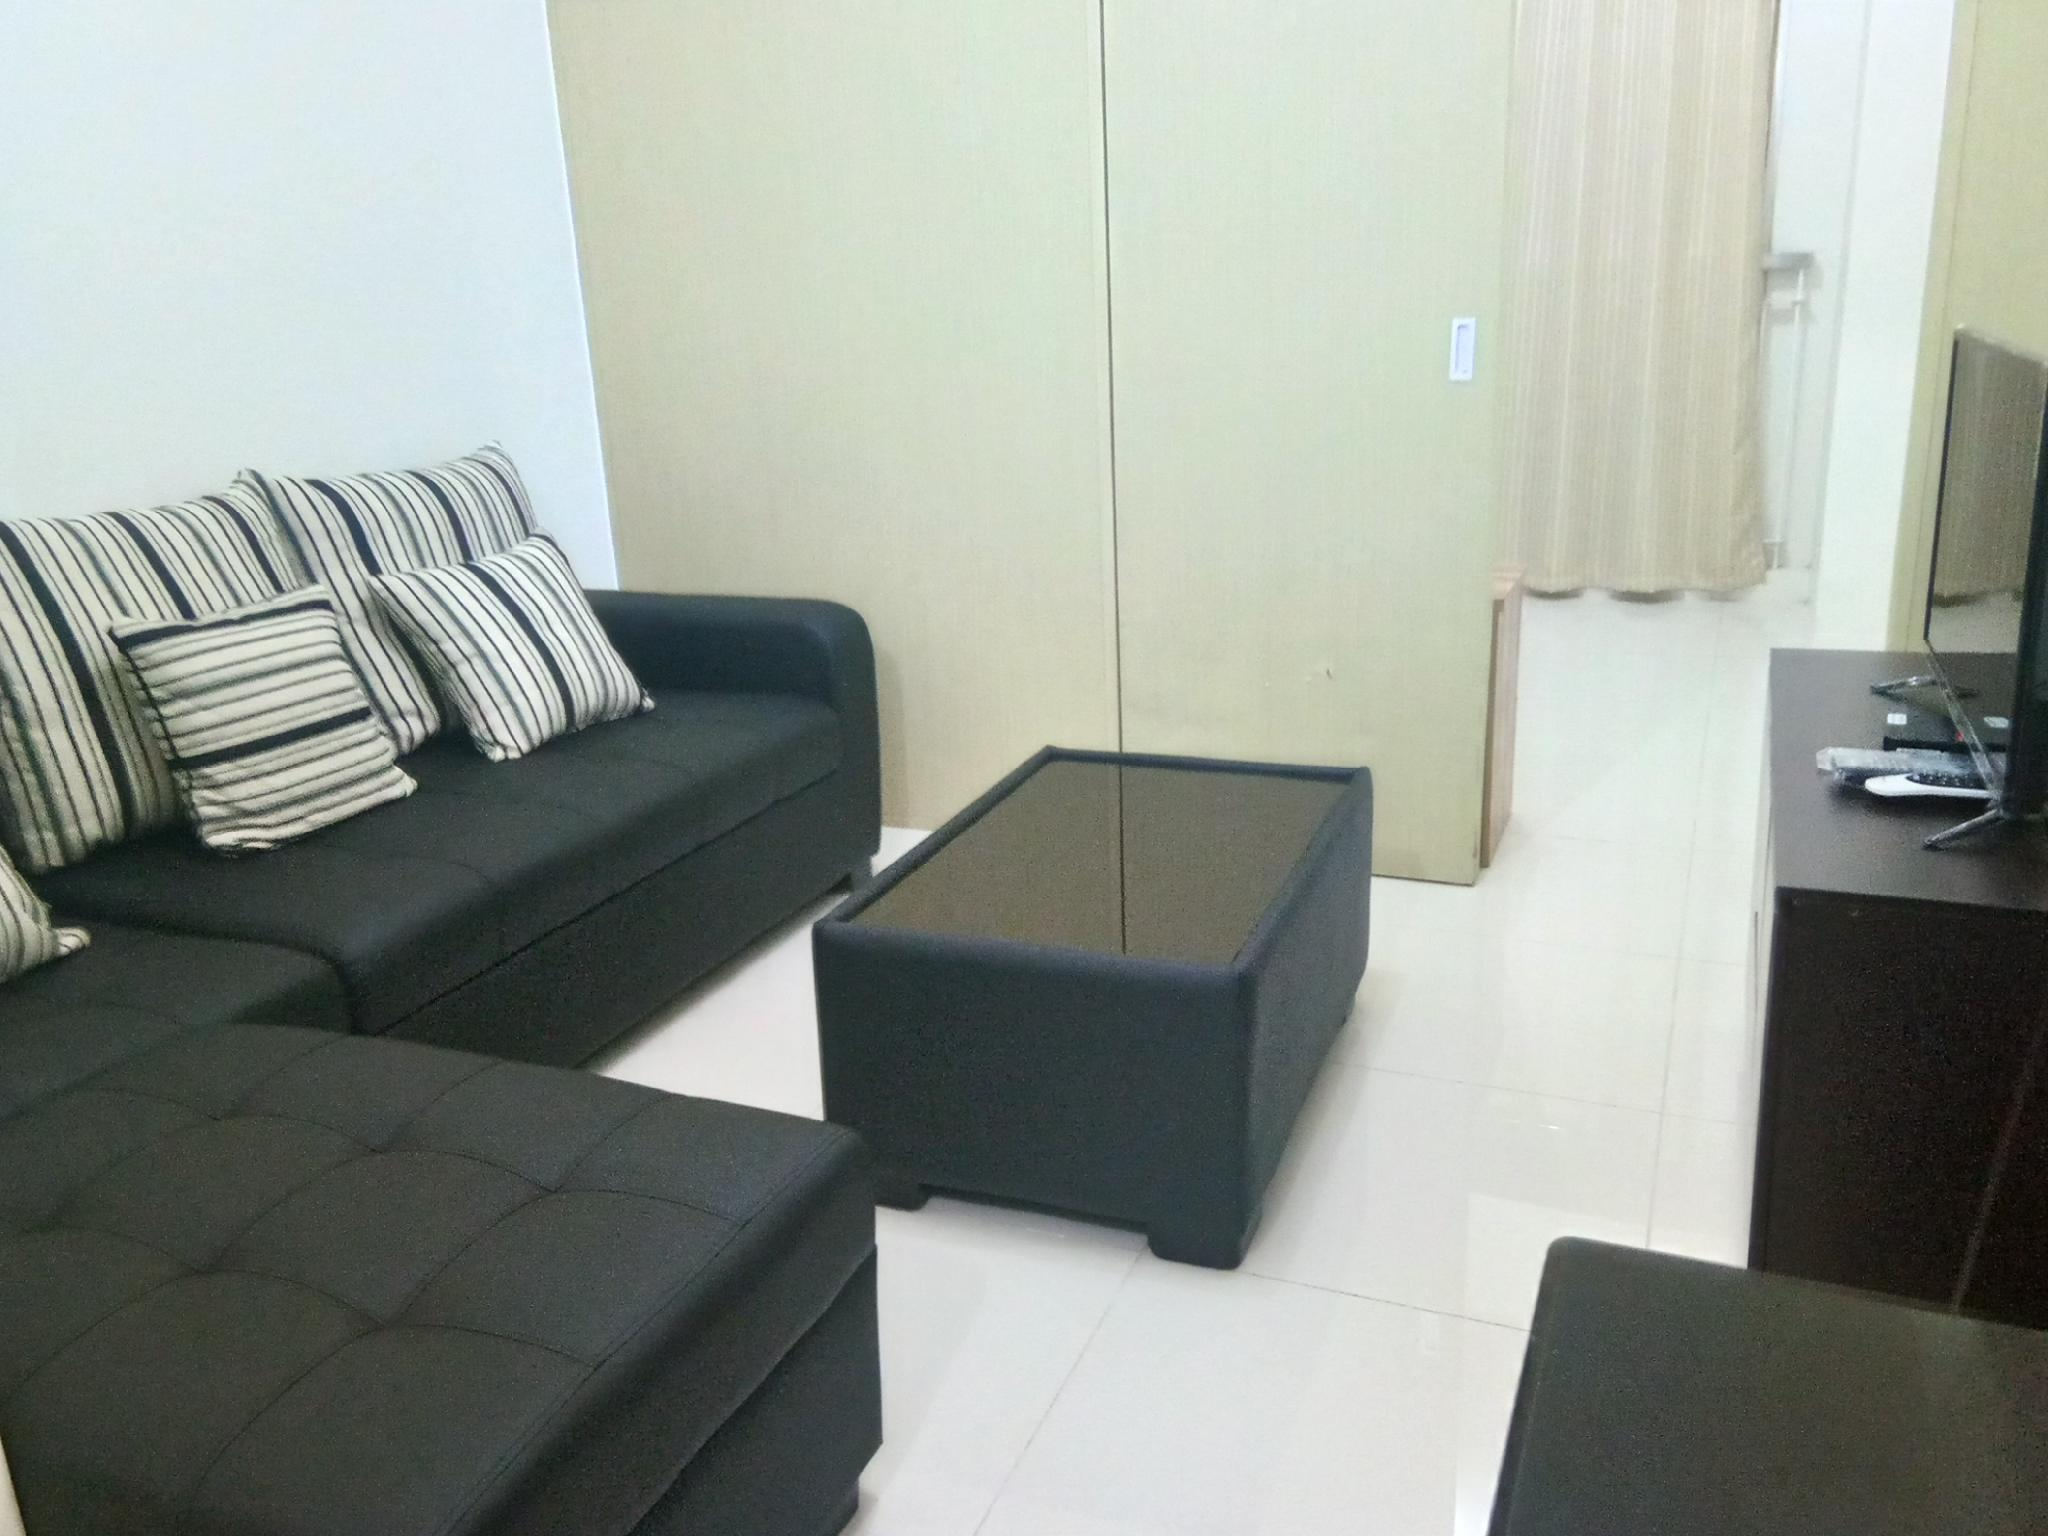 Wind Residences T4 Unit 1605 by SMCo